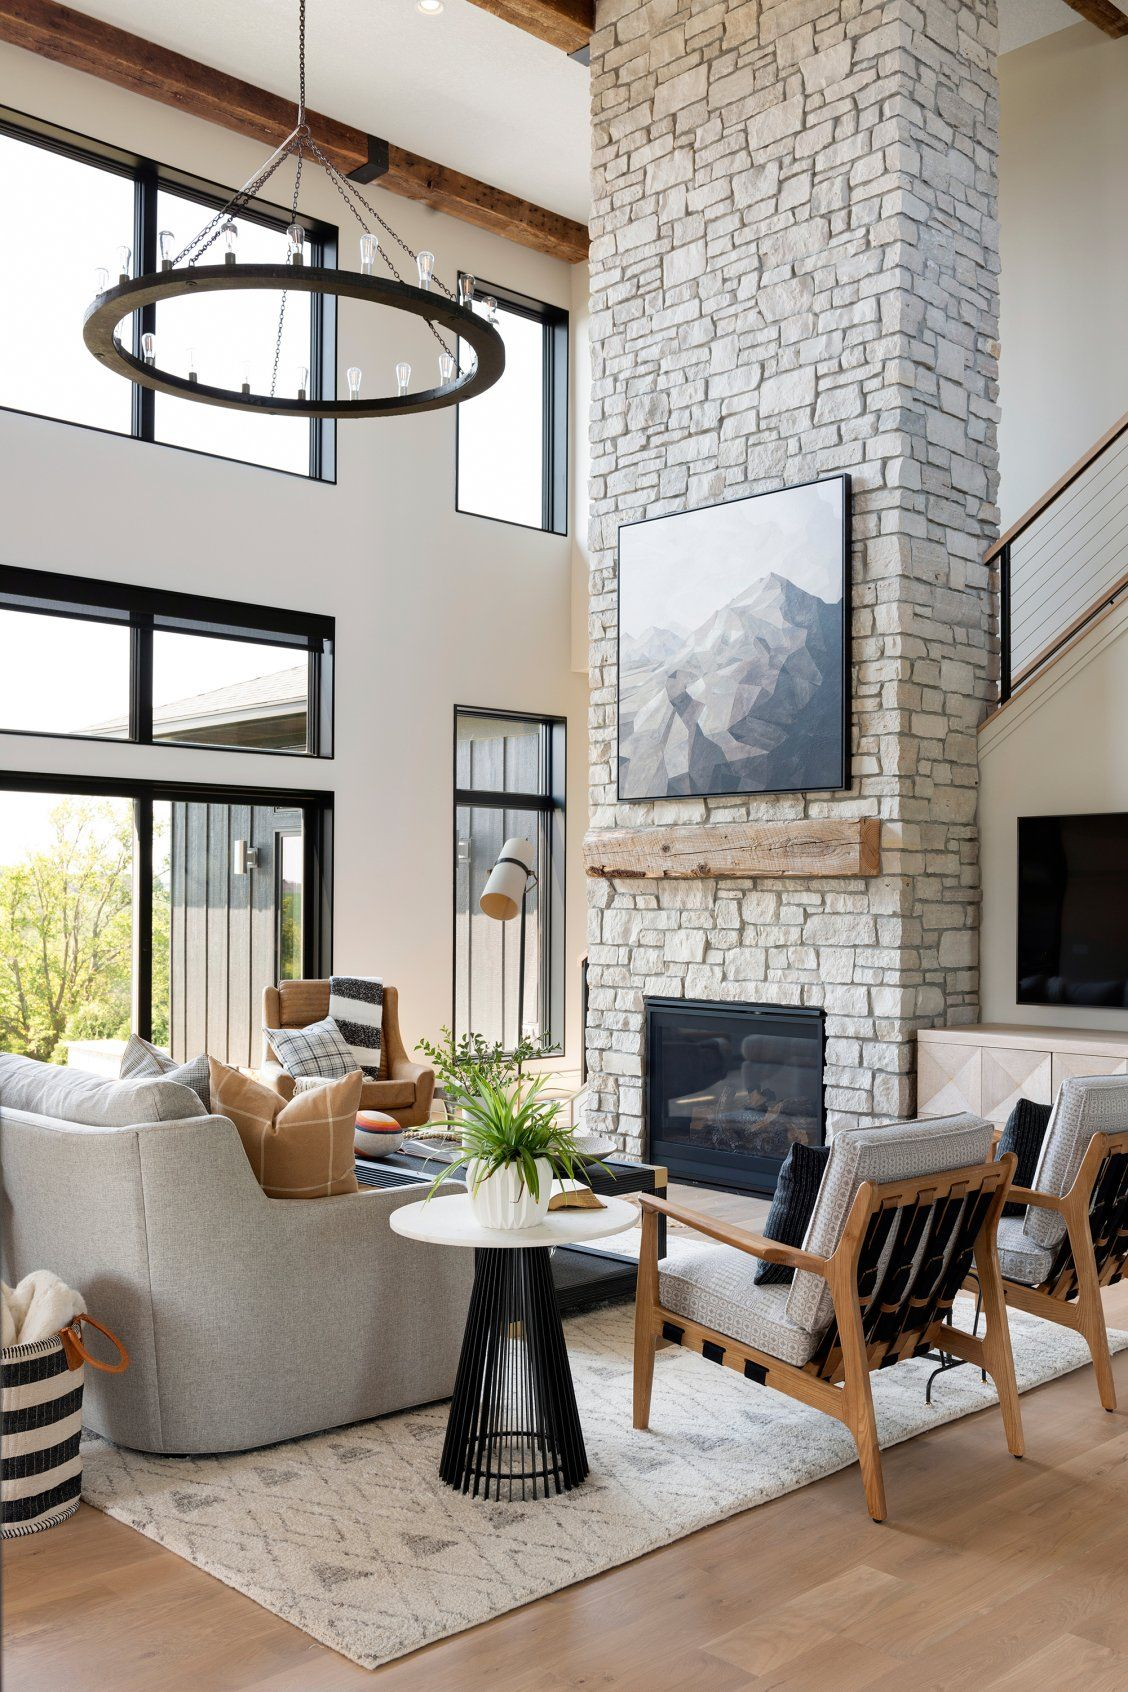 Living Room With Floor To Ceiling Windows And A Floor To Ceiling Stone Fireplace In 2020 High Ceiling Living Room Farm House Living Room Brick Fireplace Makeover